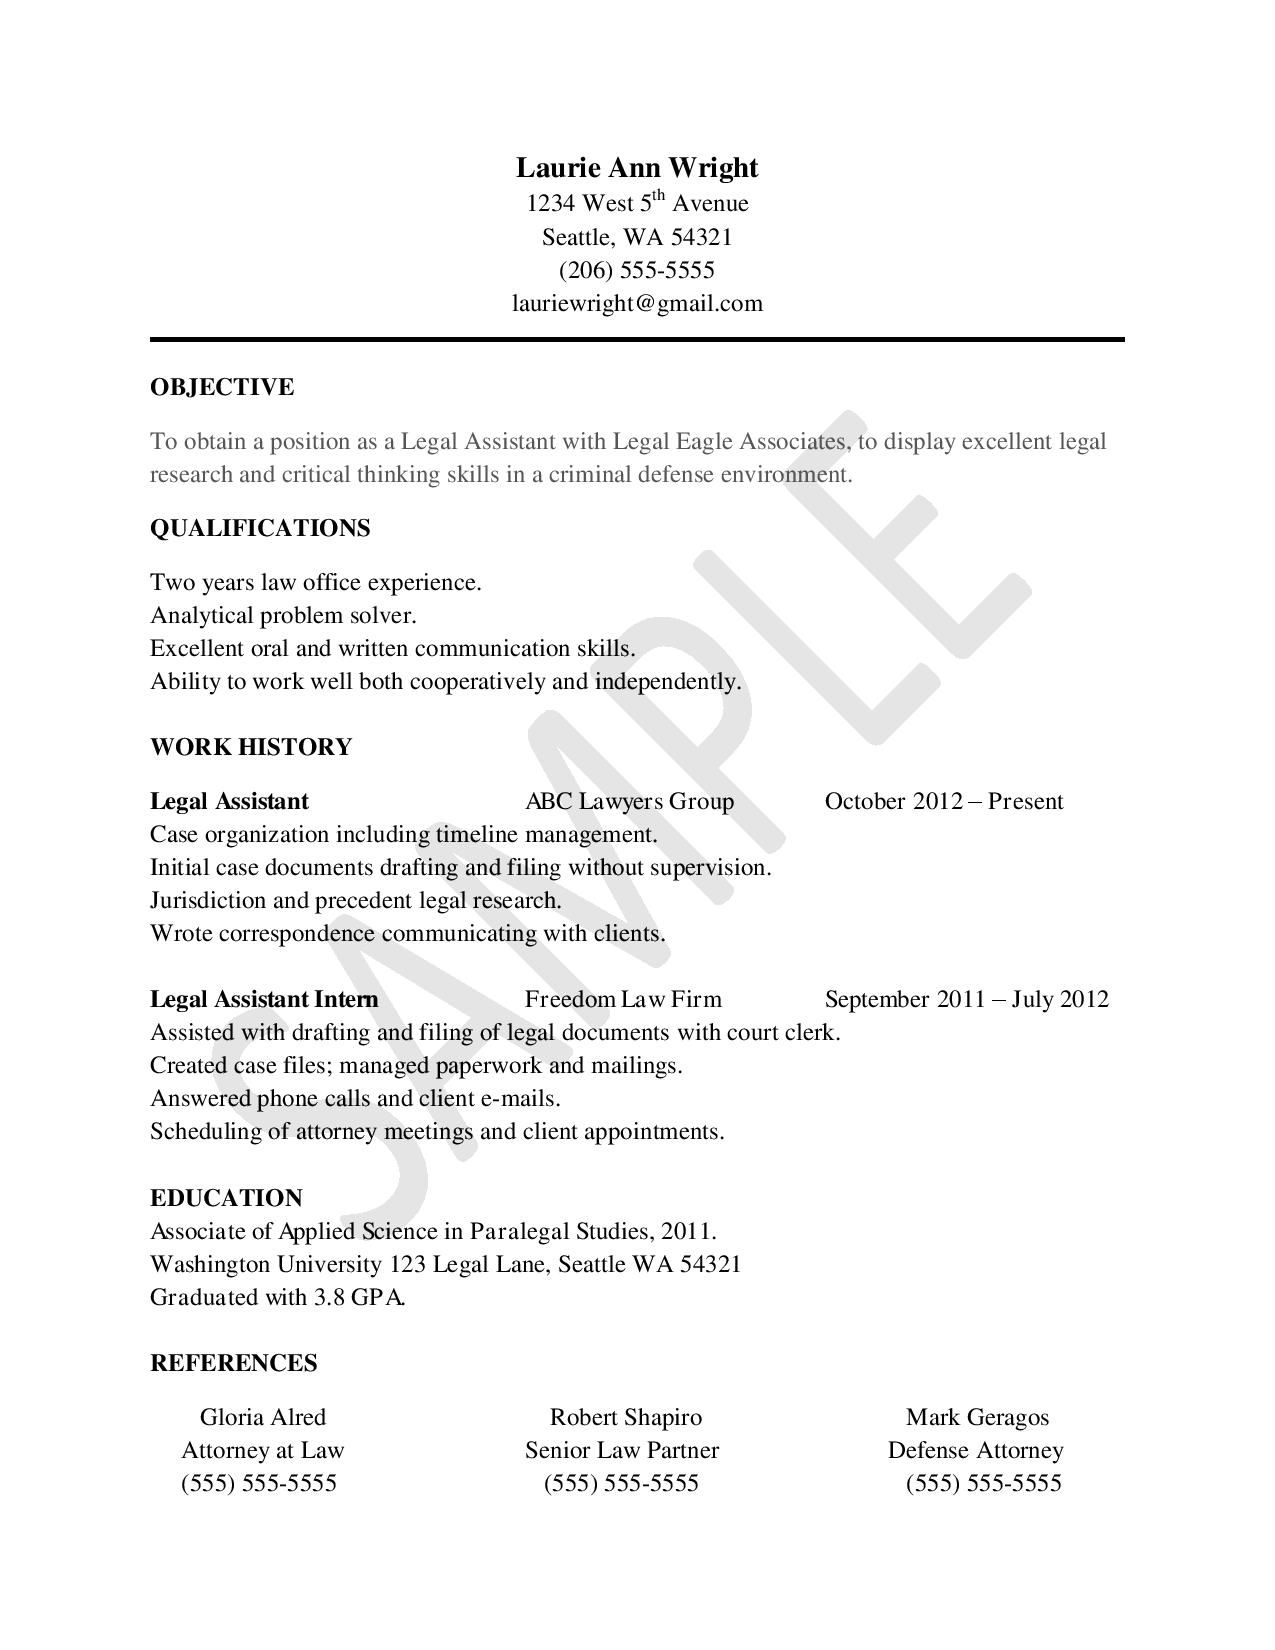 resume easyjob builder template best resume template resume easyjob builder template best best images about resume - Best Resume Templates Download Free